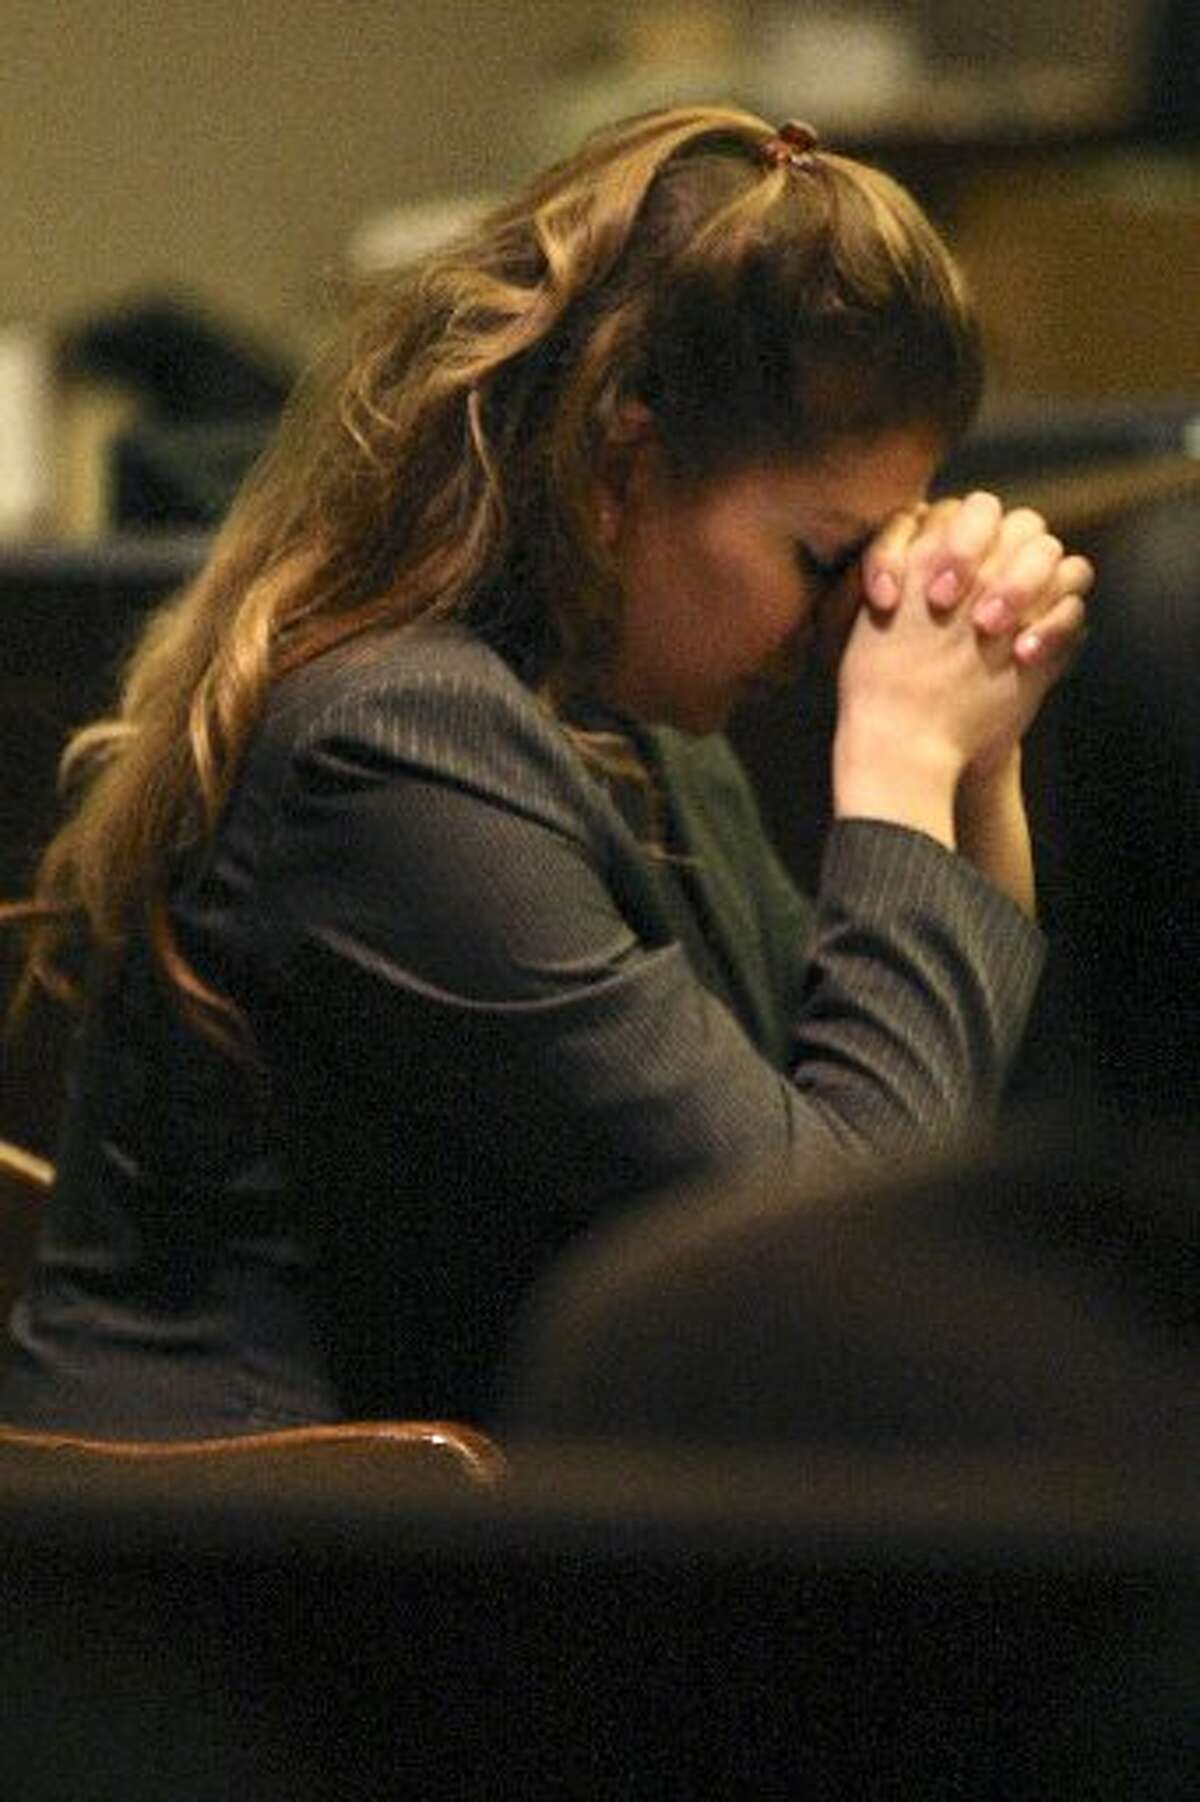 Jenny Ann Ybarra admitted that she drove the wrong way along the freeway while trying to find her way home to Seguin after a night of drinking with friends in San Antonio. Read more: Ybarra receives 2-year prison term for DWI fatality